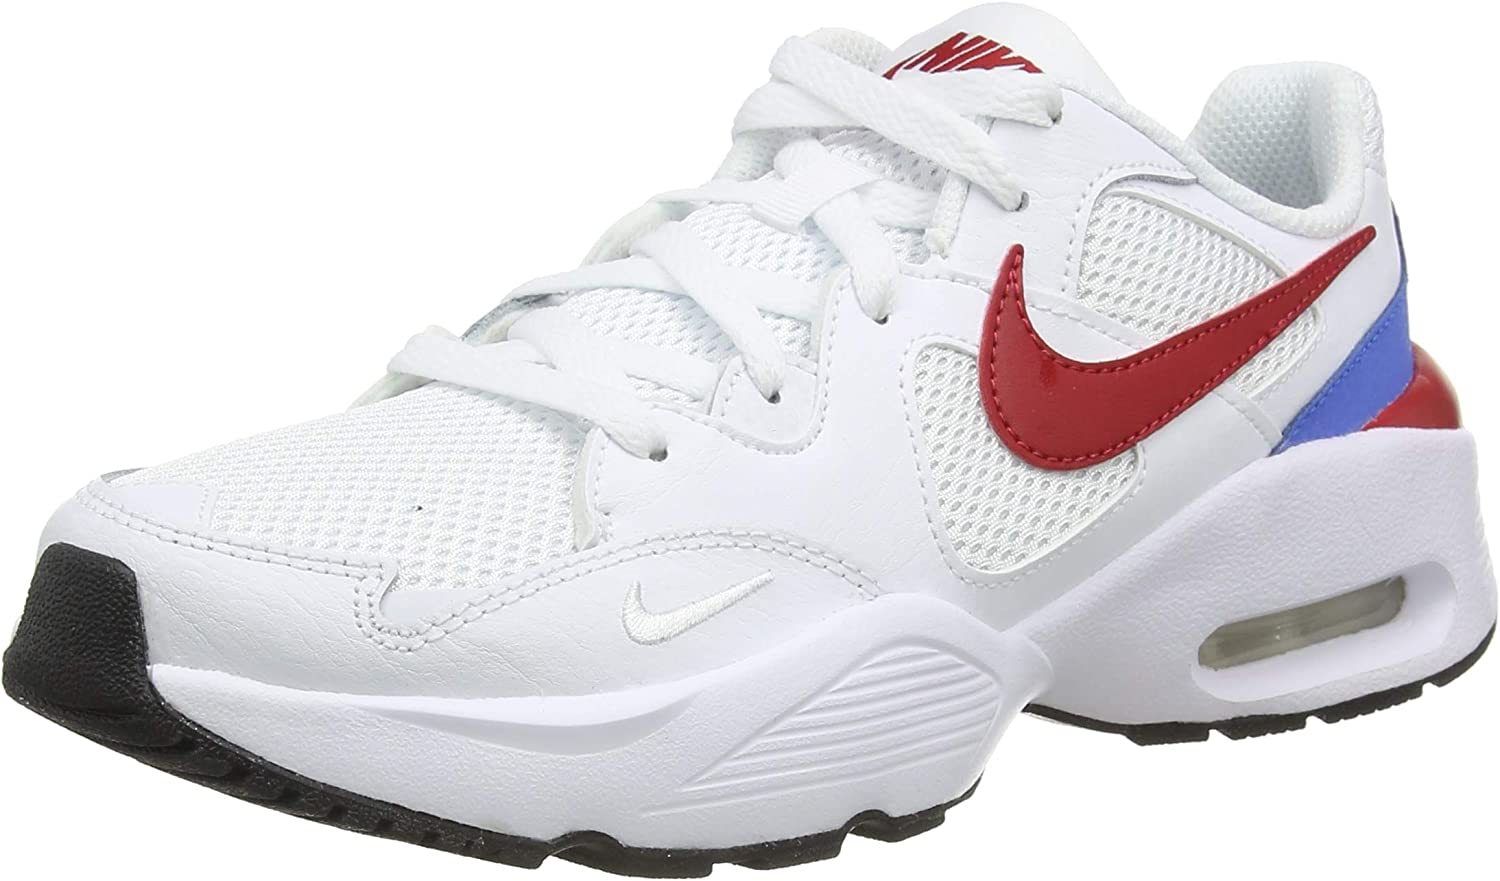 Nike Air Max Fusion Running Shoe, White Gym Red Pacific Blue, 6.5 US Unisex Big Kid